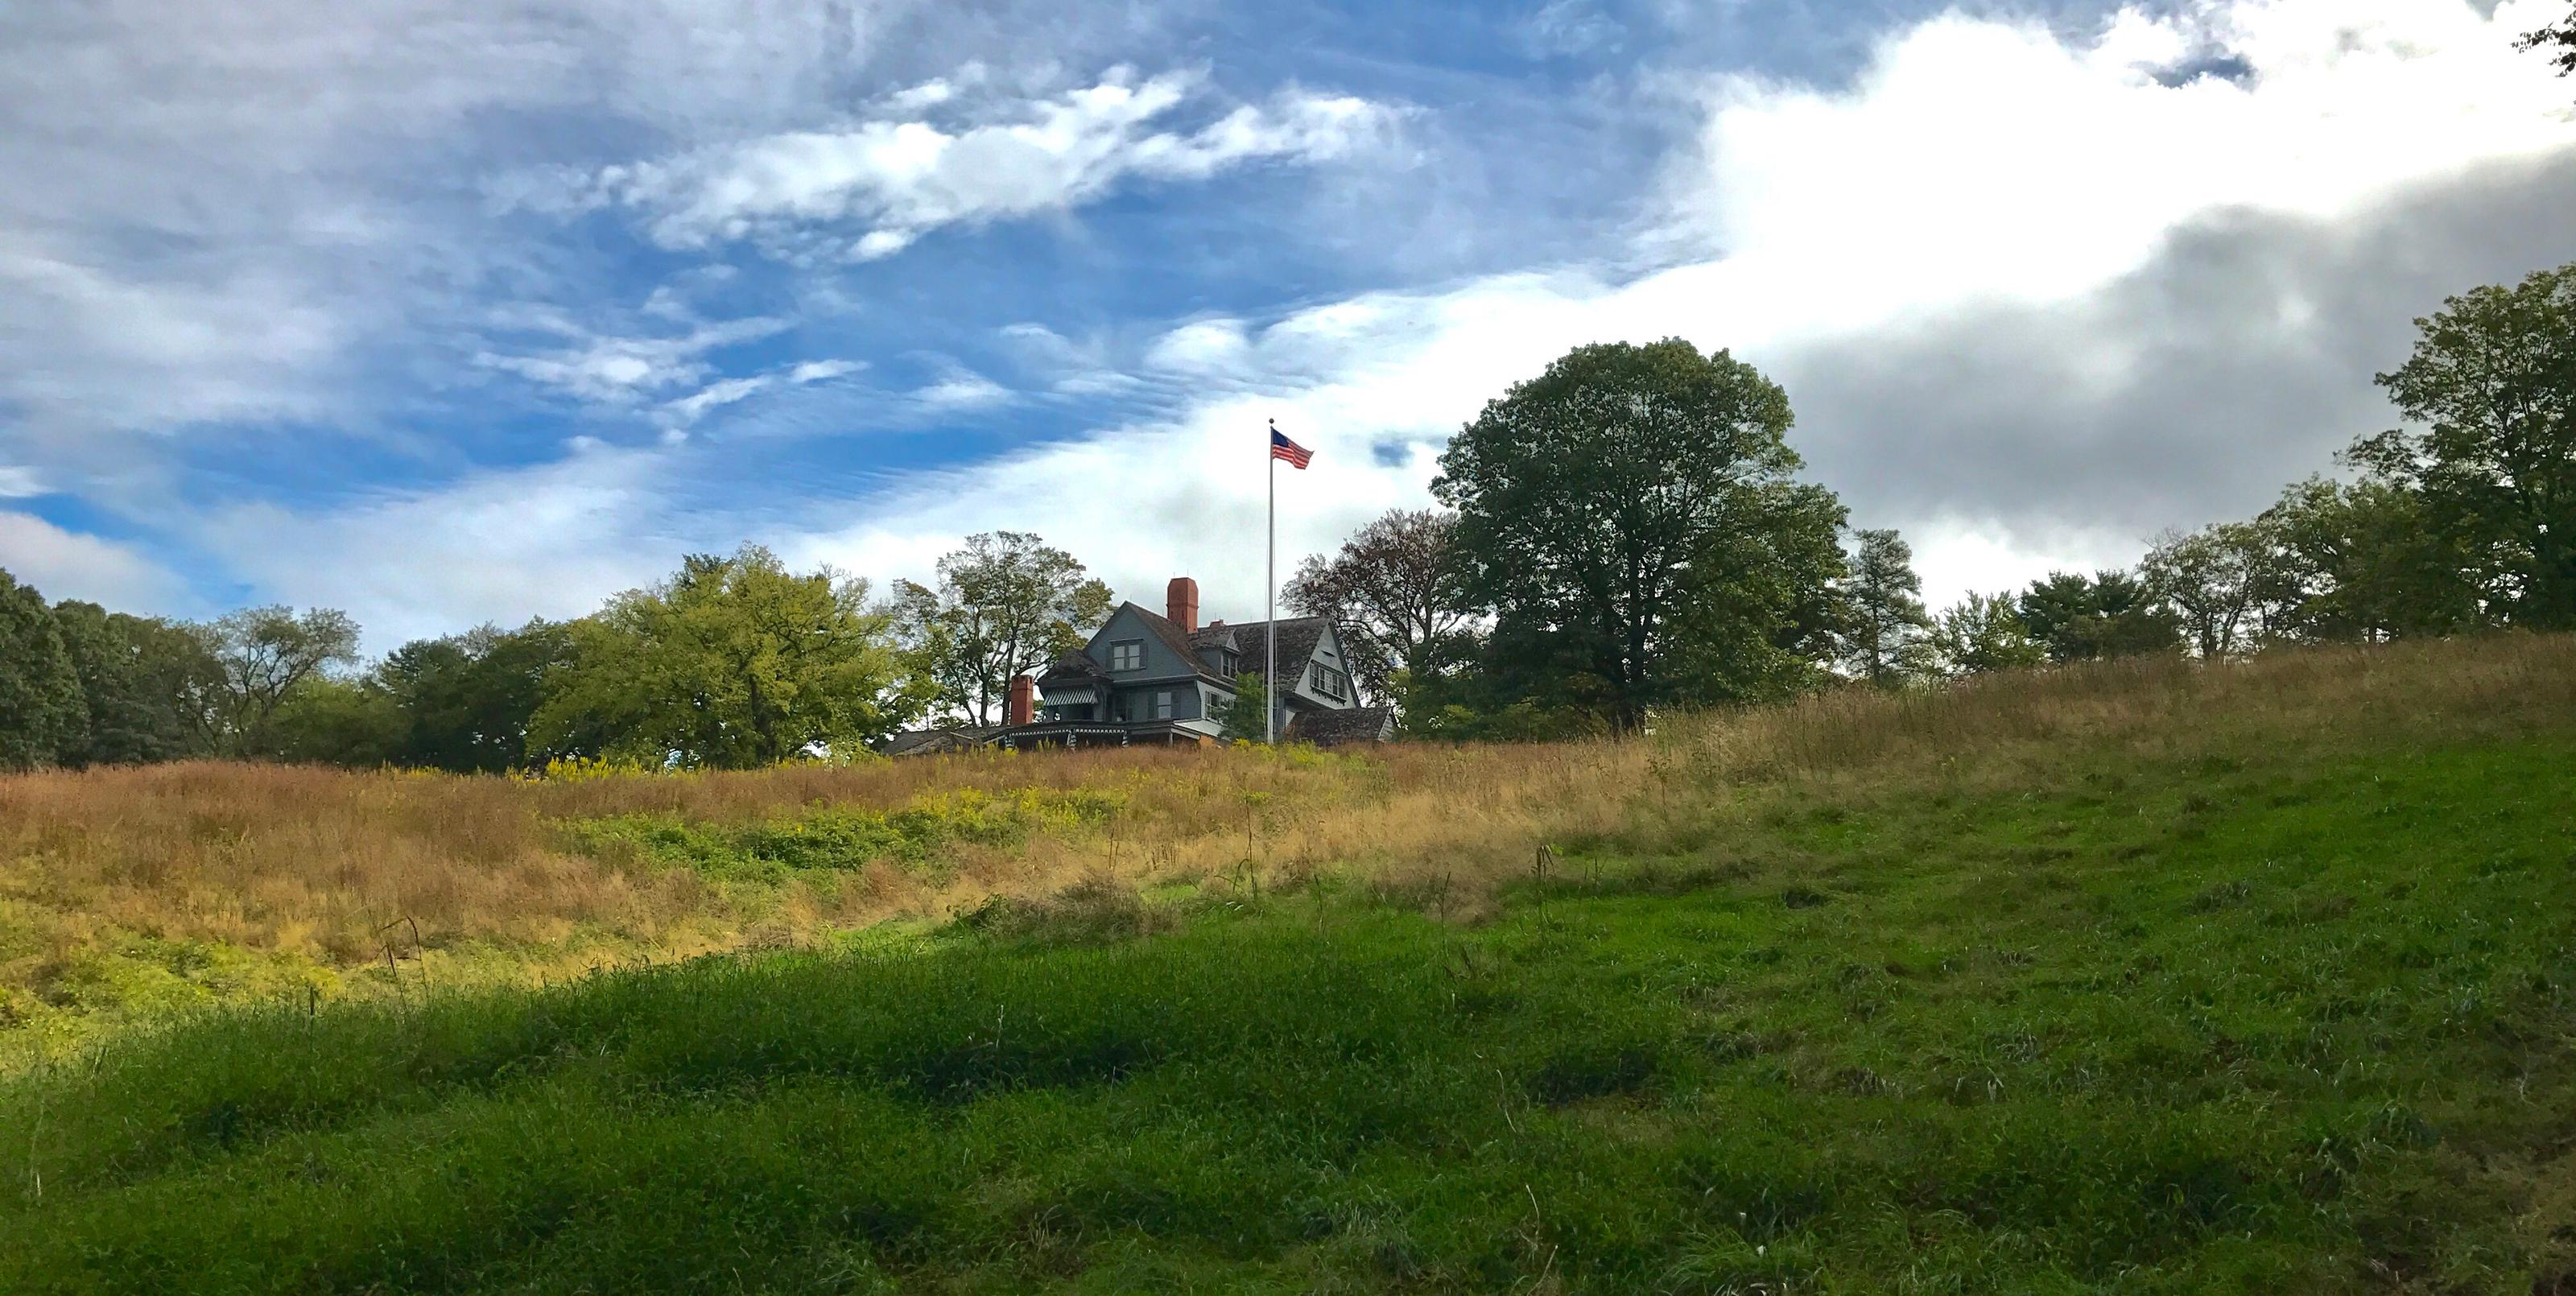 A gray house a top a grassy hill with blue sky and clouds in the background.Theodore Roosevelt's home atop Sagamore Hill.